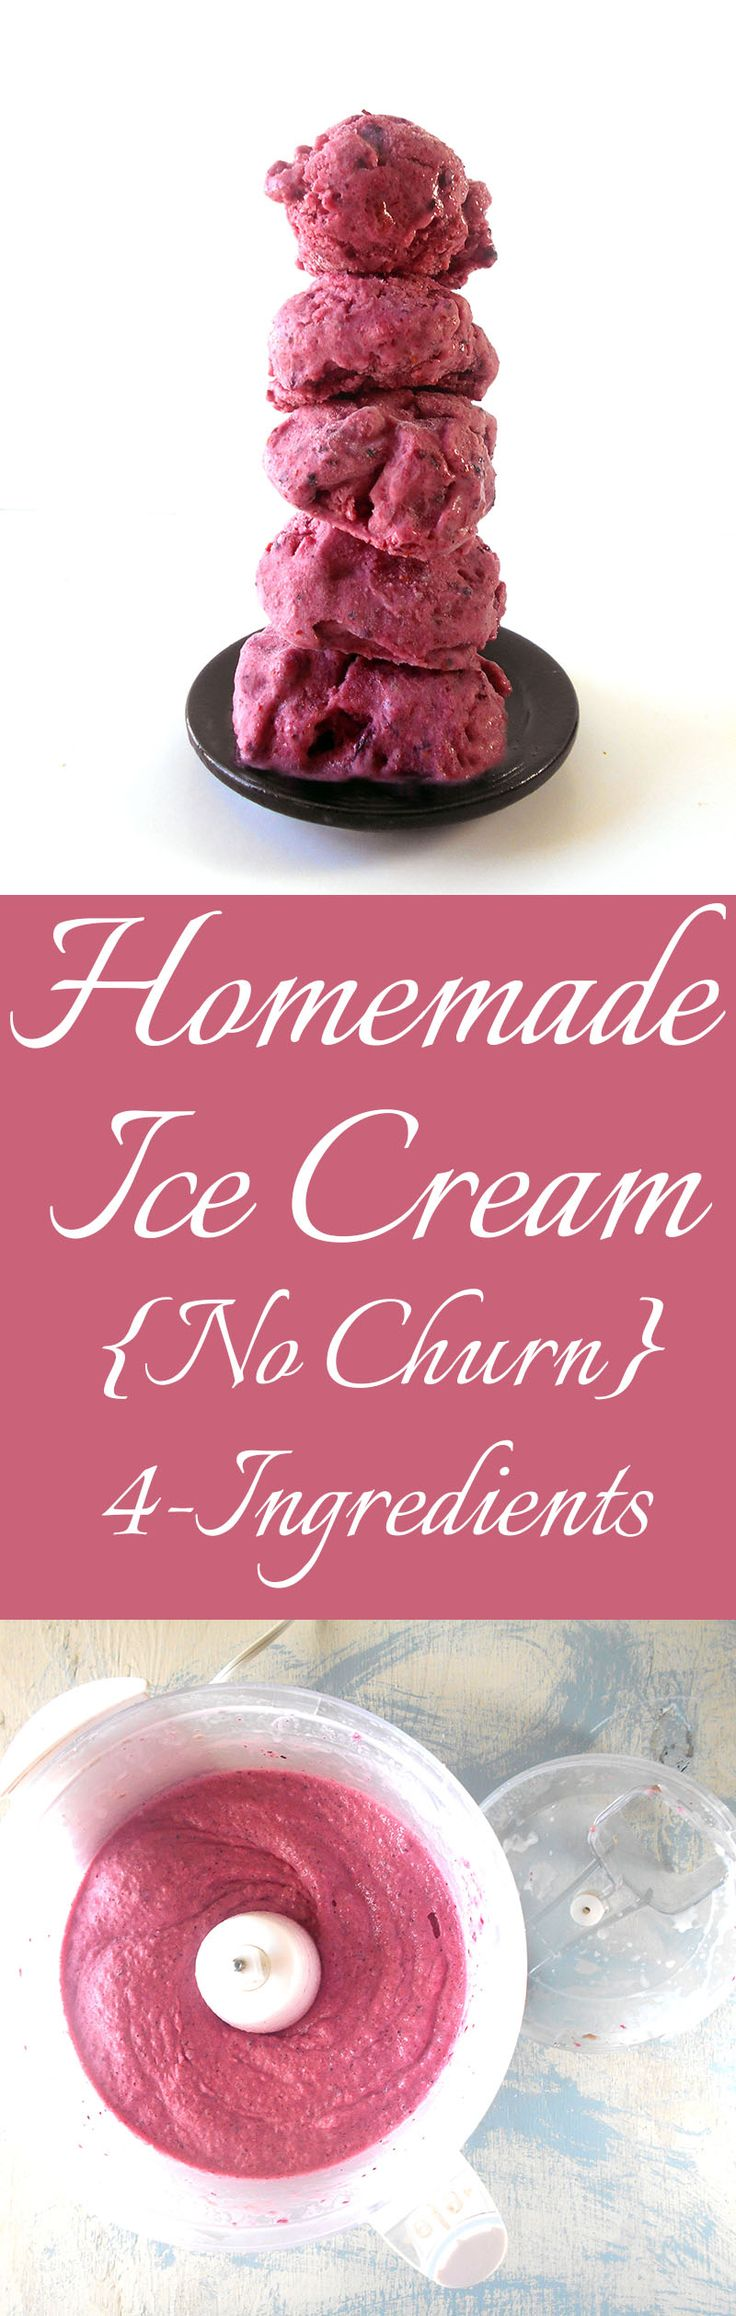 You don't need an ice cream churner to make ice cream. This homemade ice cream recipe comes together within 20 minutes using a food processor. Only 4 ingredients required.